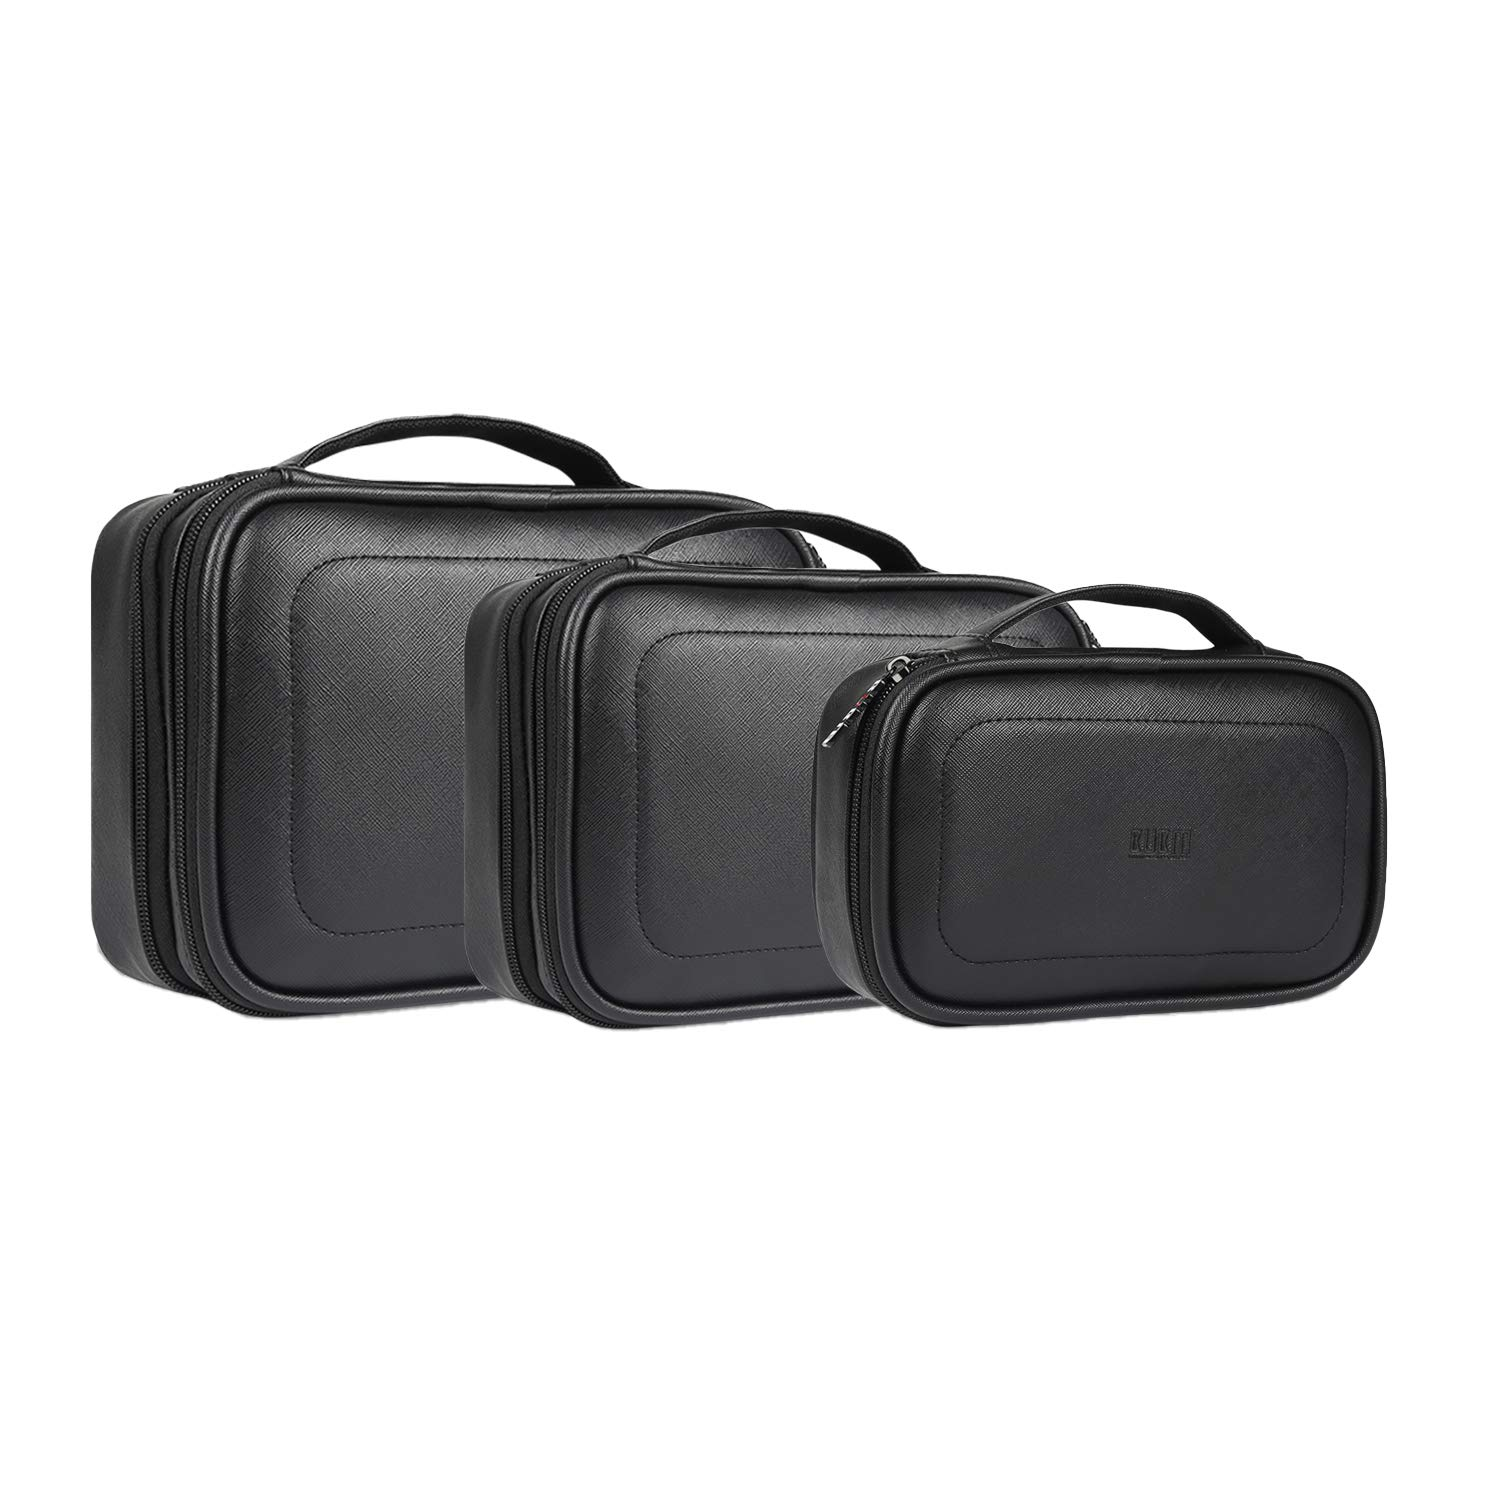 BUBM 3pcs Electronic Travel Organizer, PU Gear Carry Bag for Cables, Cord, USB Flash Drive, Battery and More, Compact and Multi-Purpose,(Black)